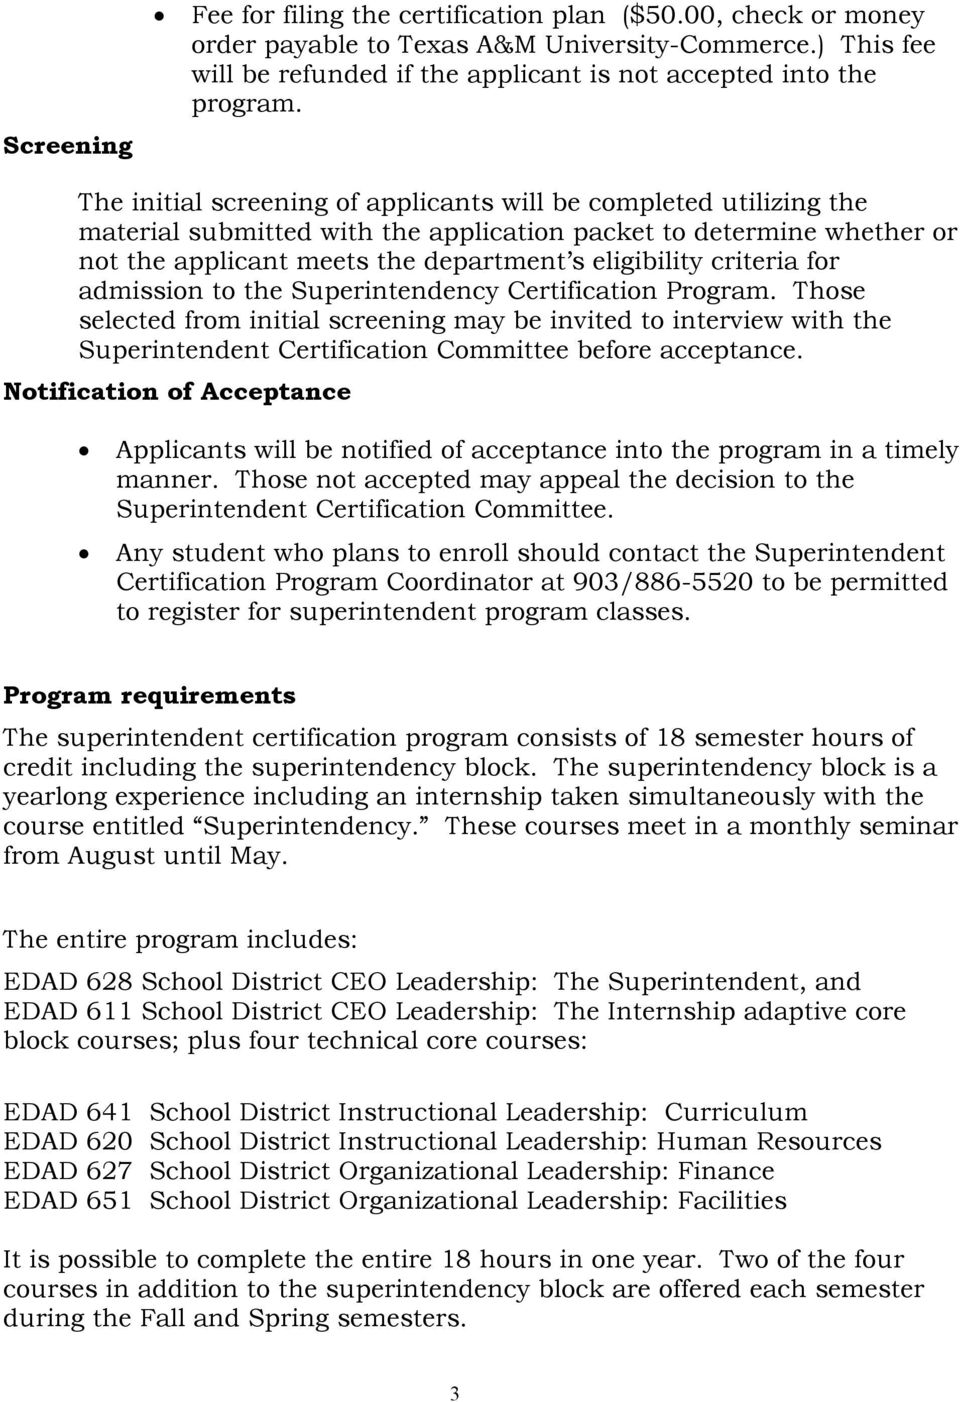 criteria for admission to the Superintendency Certification Program.